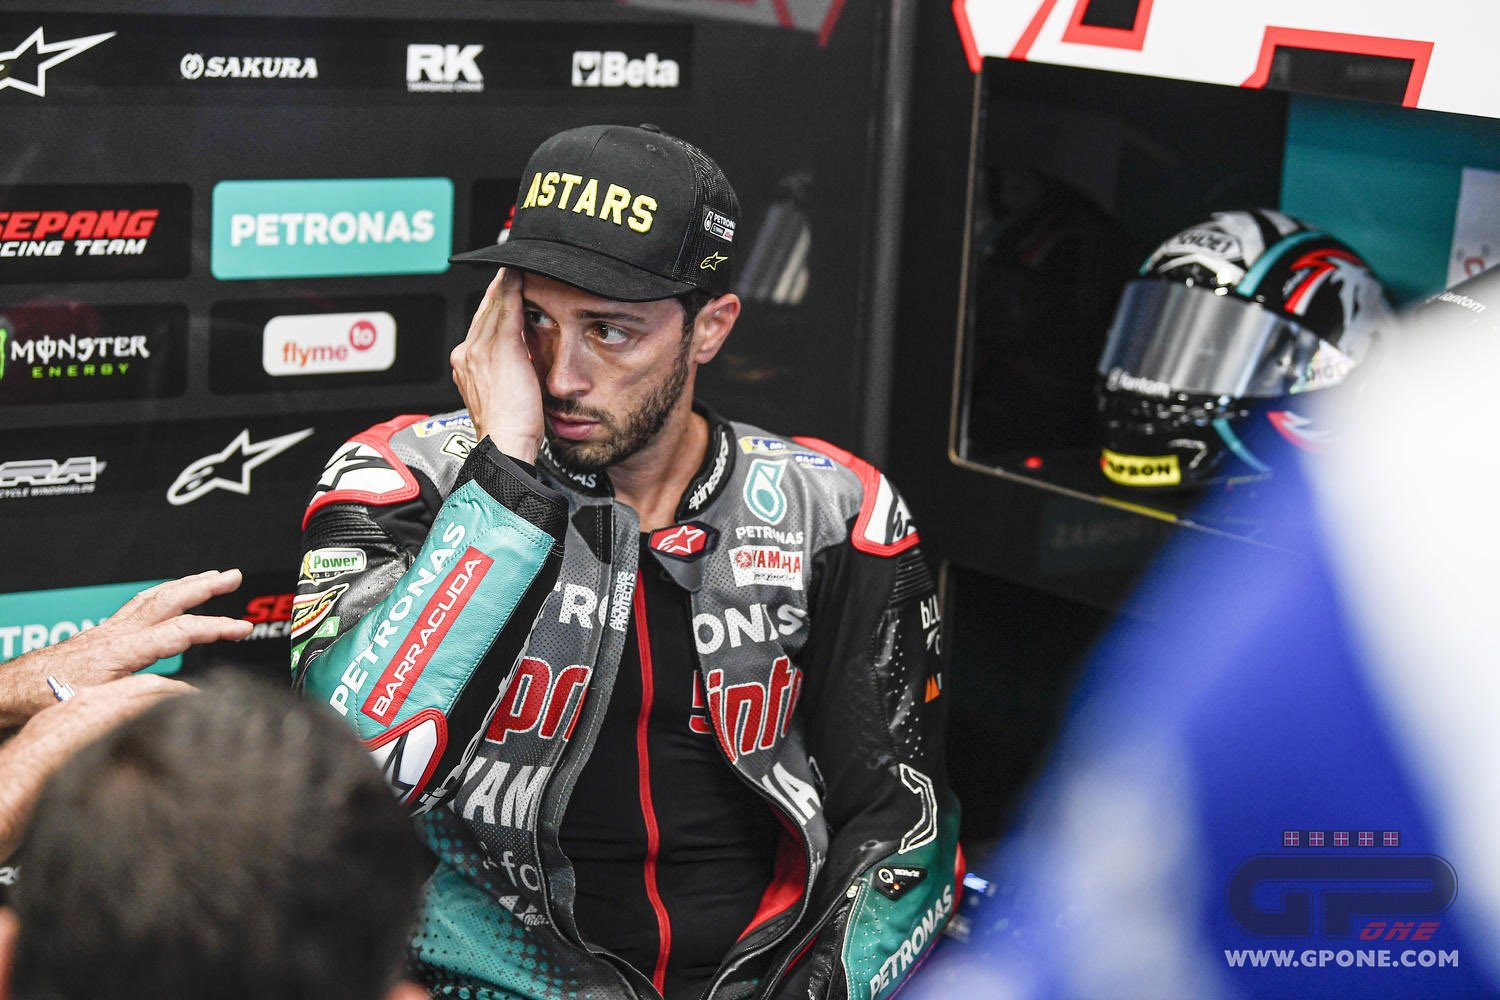 MotoGP, Dovizioso not fast, but convinced his indications are important for Yamaha - GPOne.com